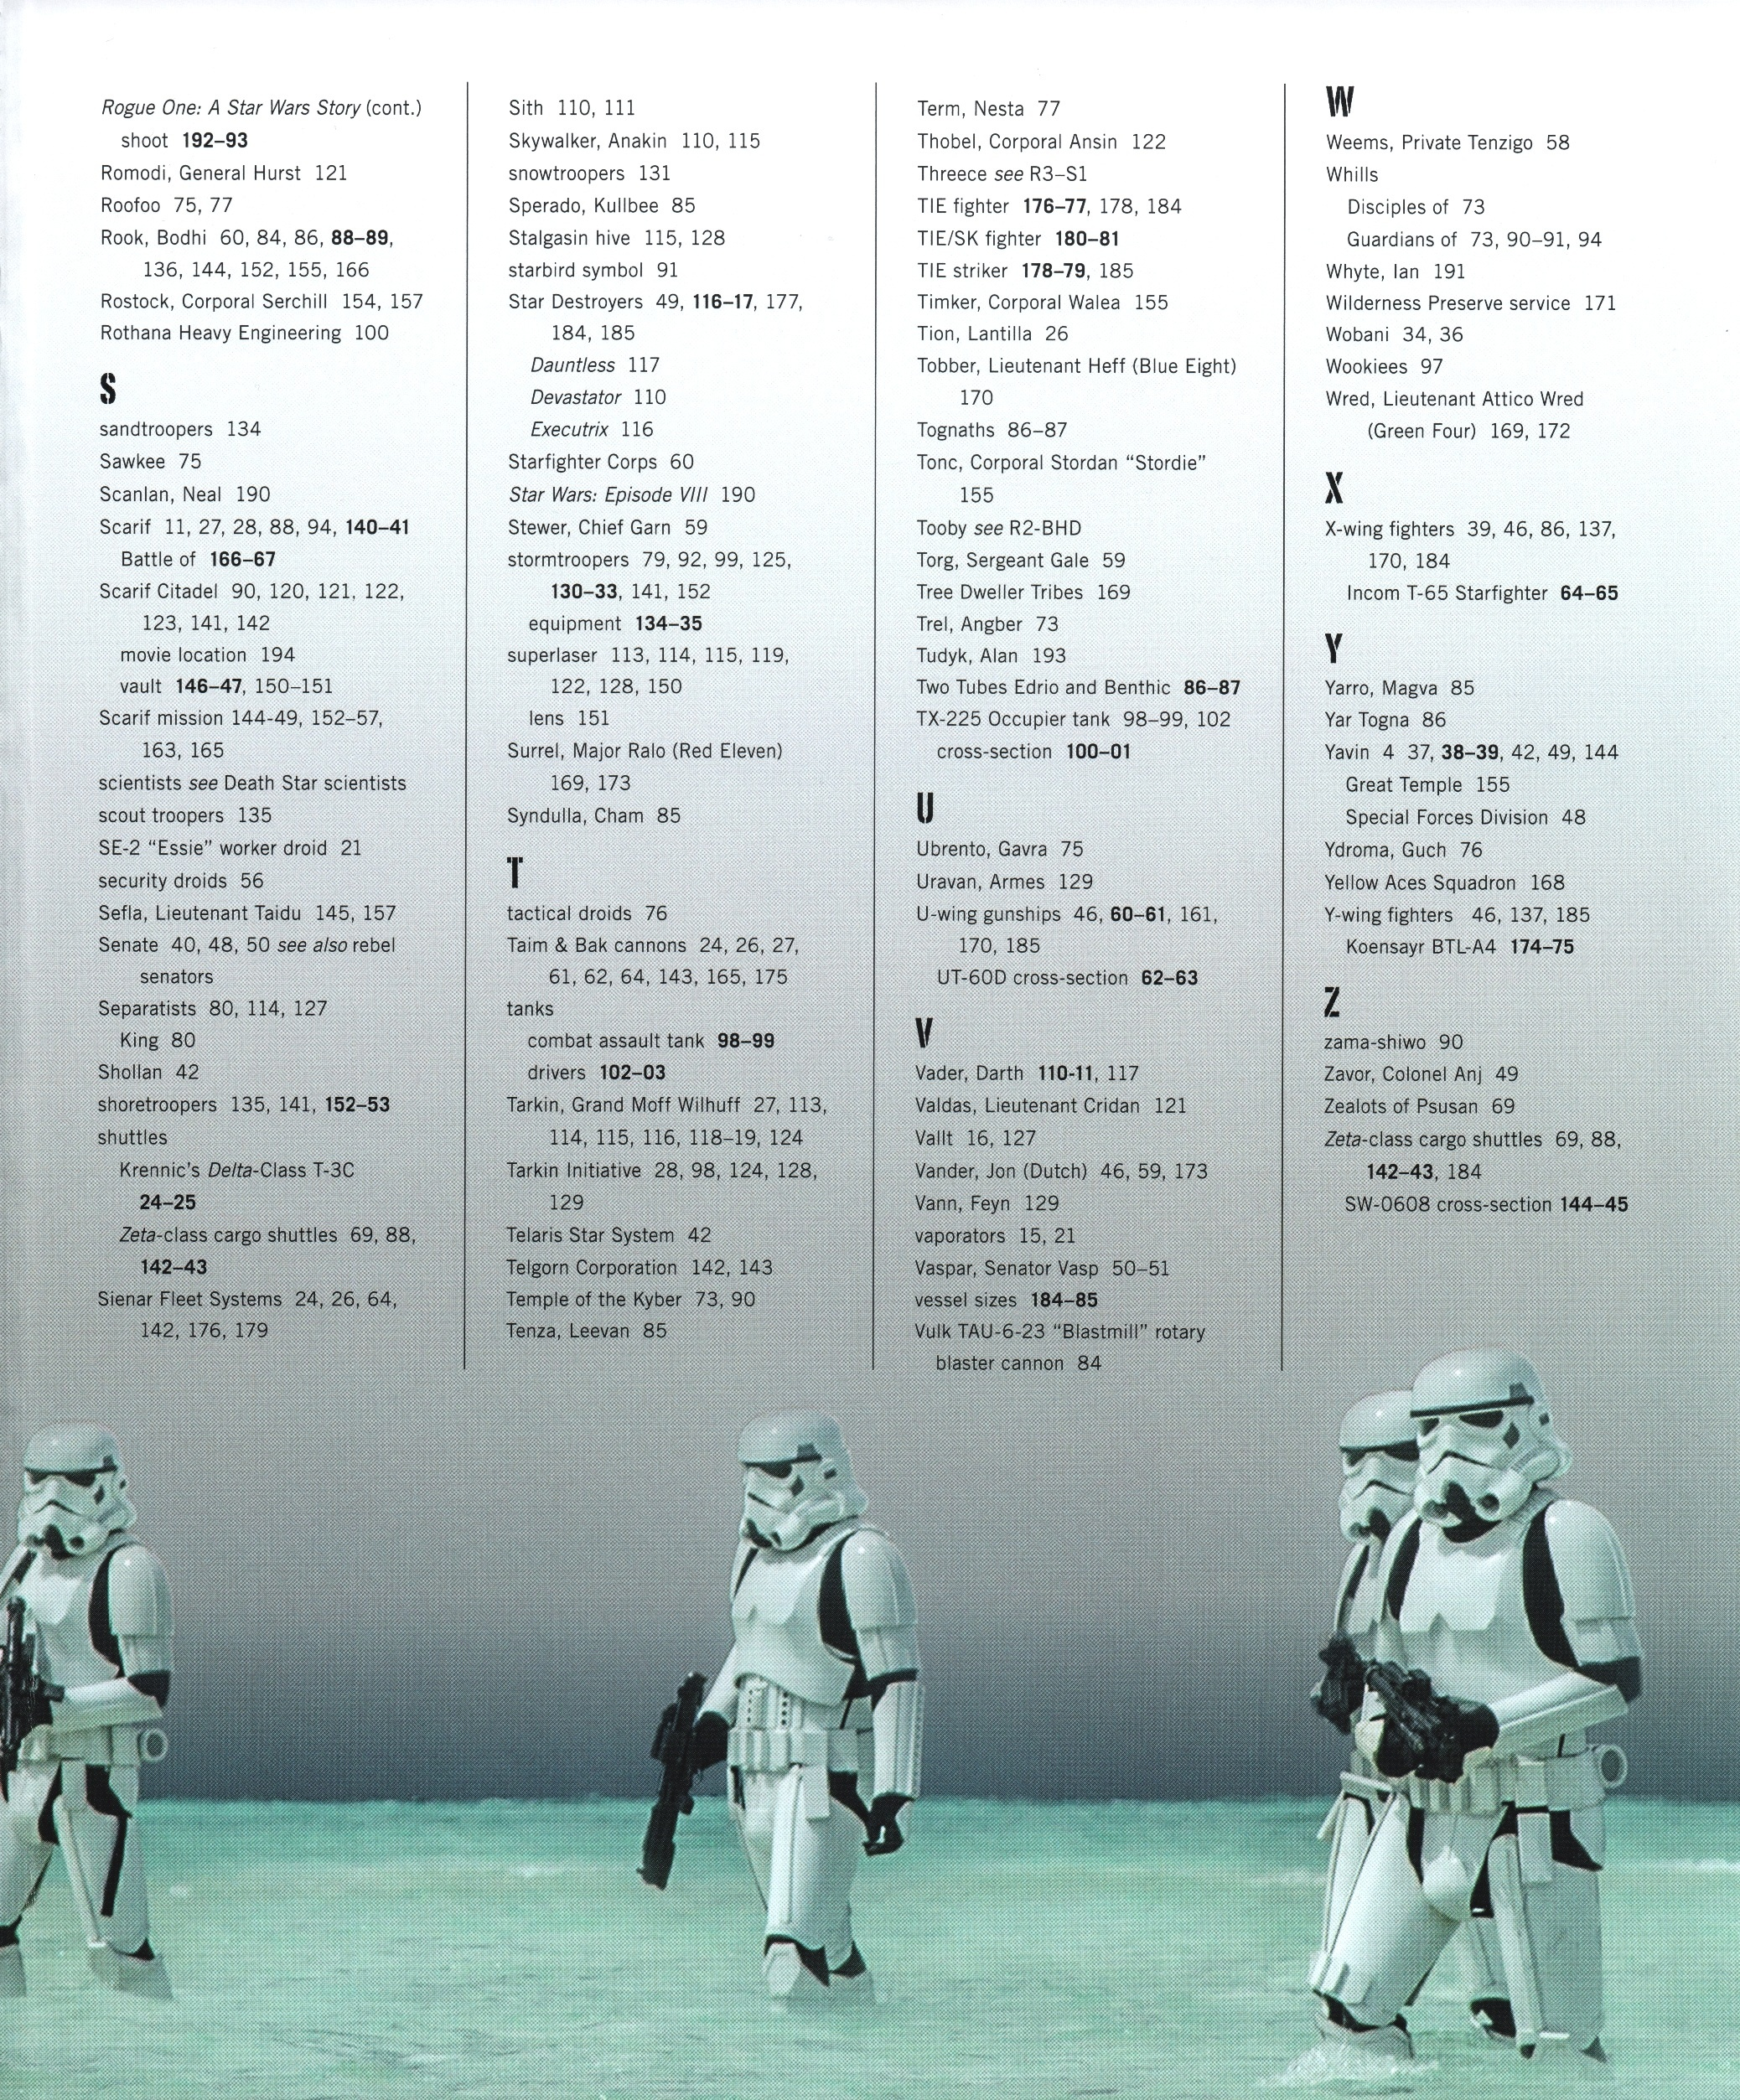 Rogue One Ultimate Visual Guide (b0bafett_Empire) p199